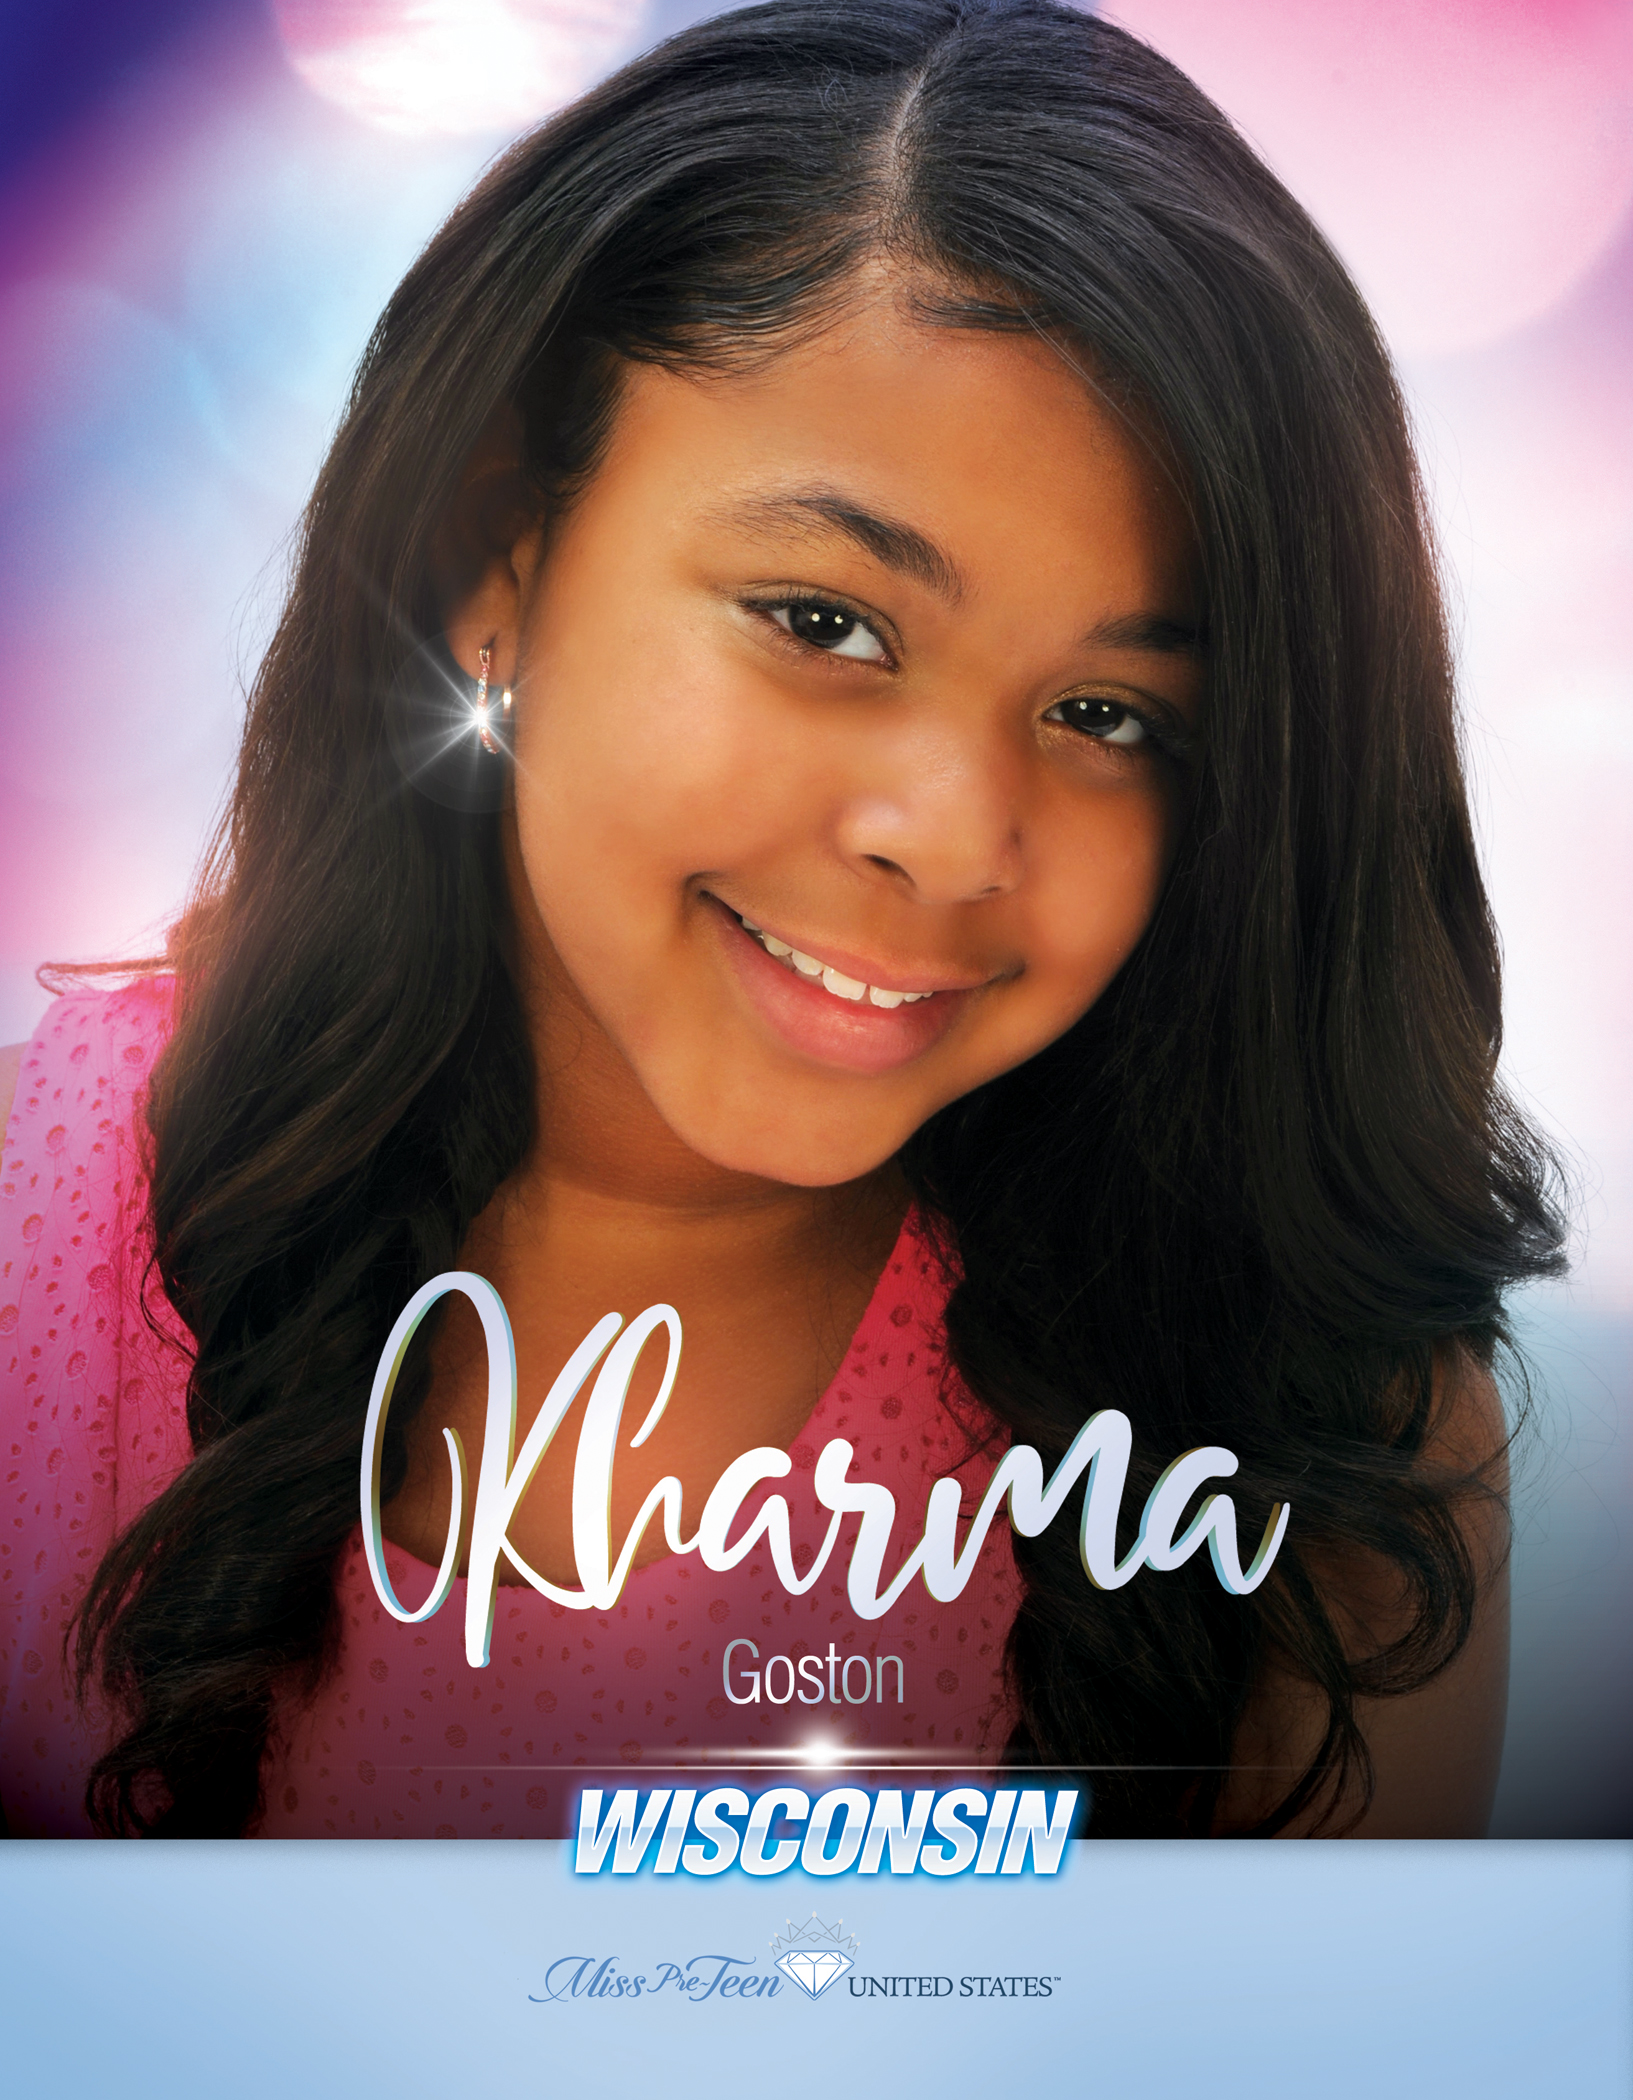 Kharma Goston Miss Pre-Teen Wisconsin United States - 2019